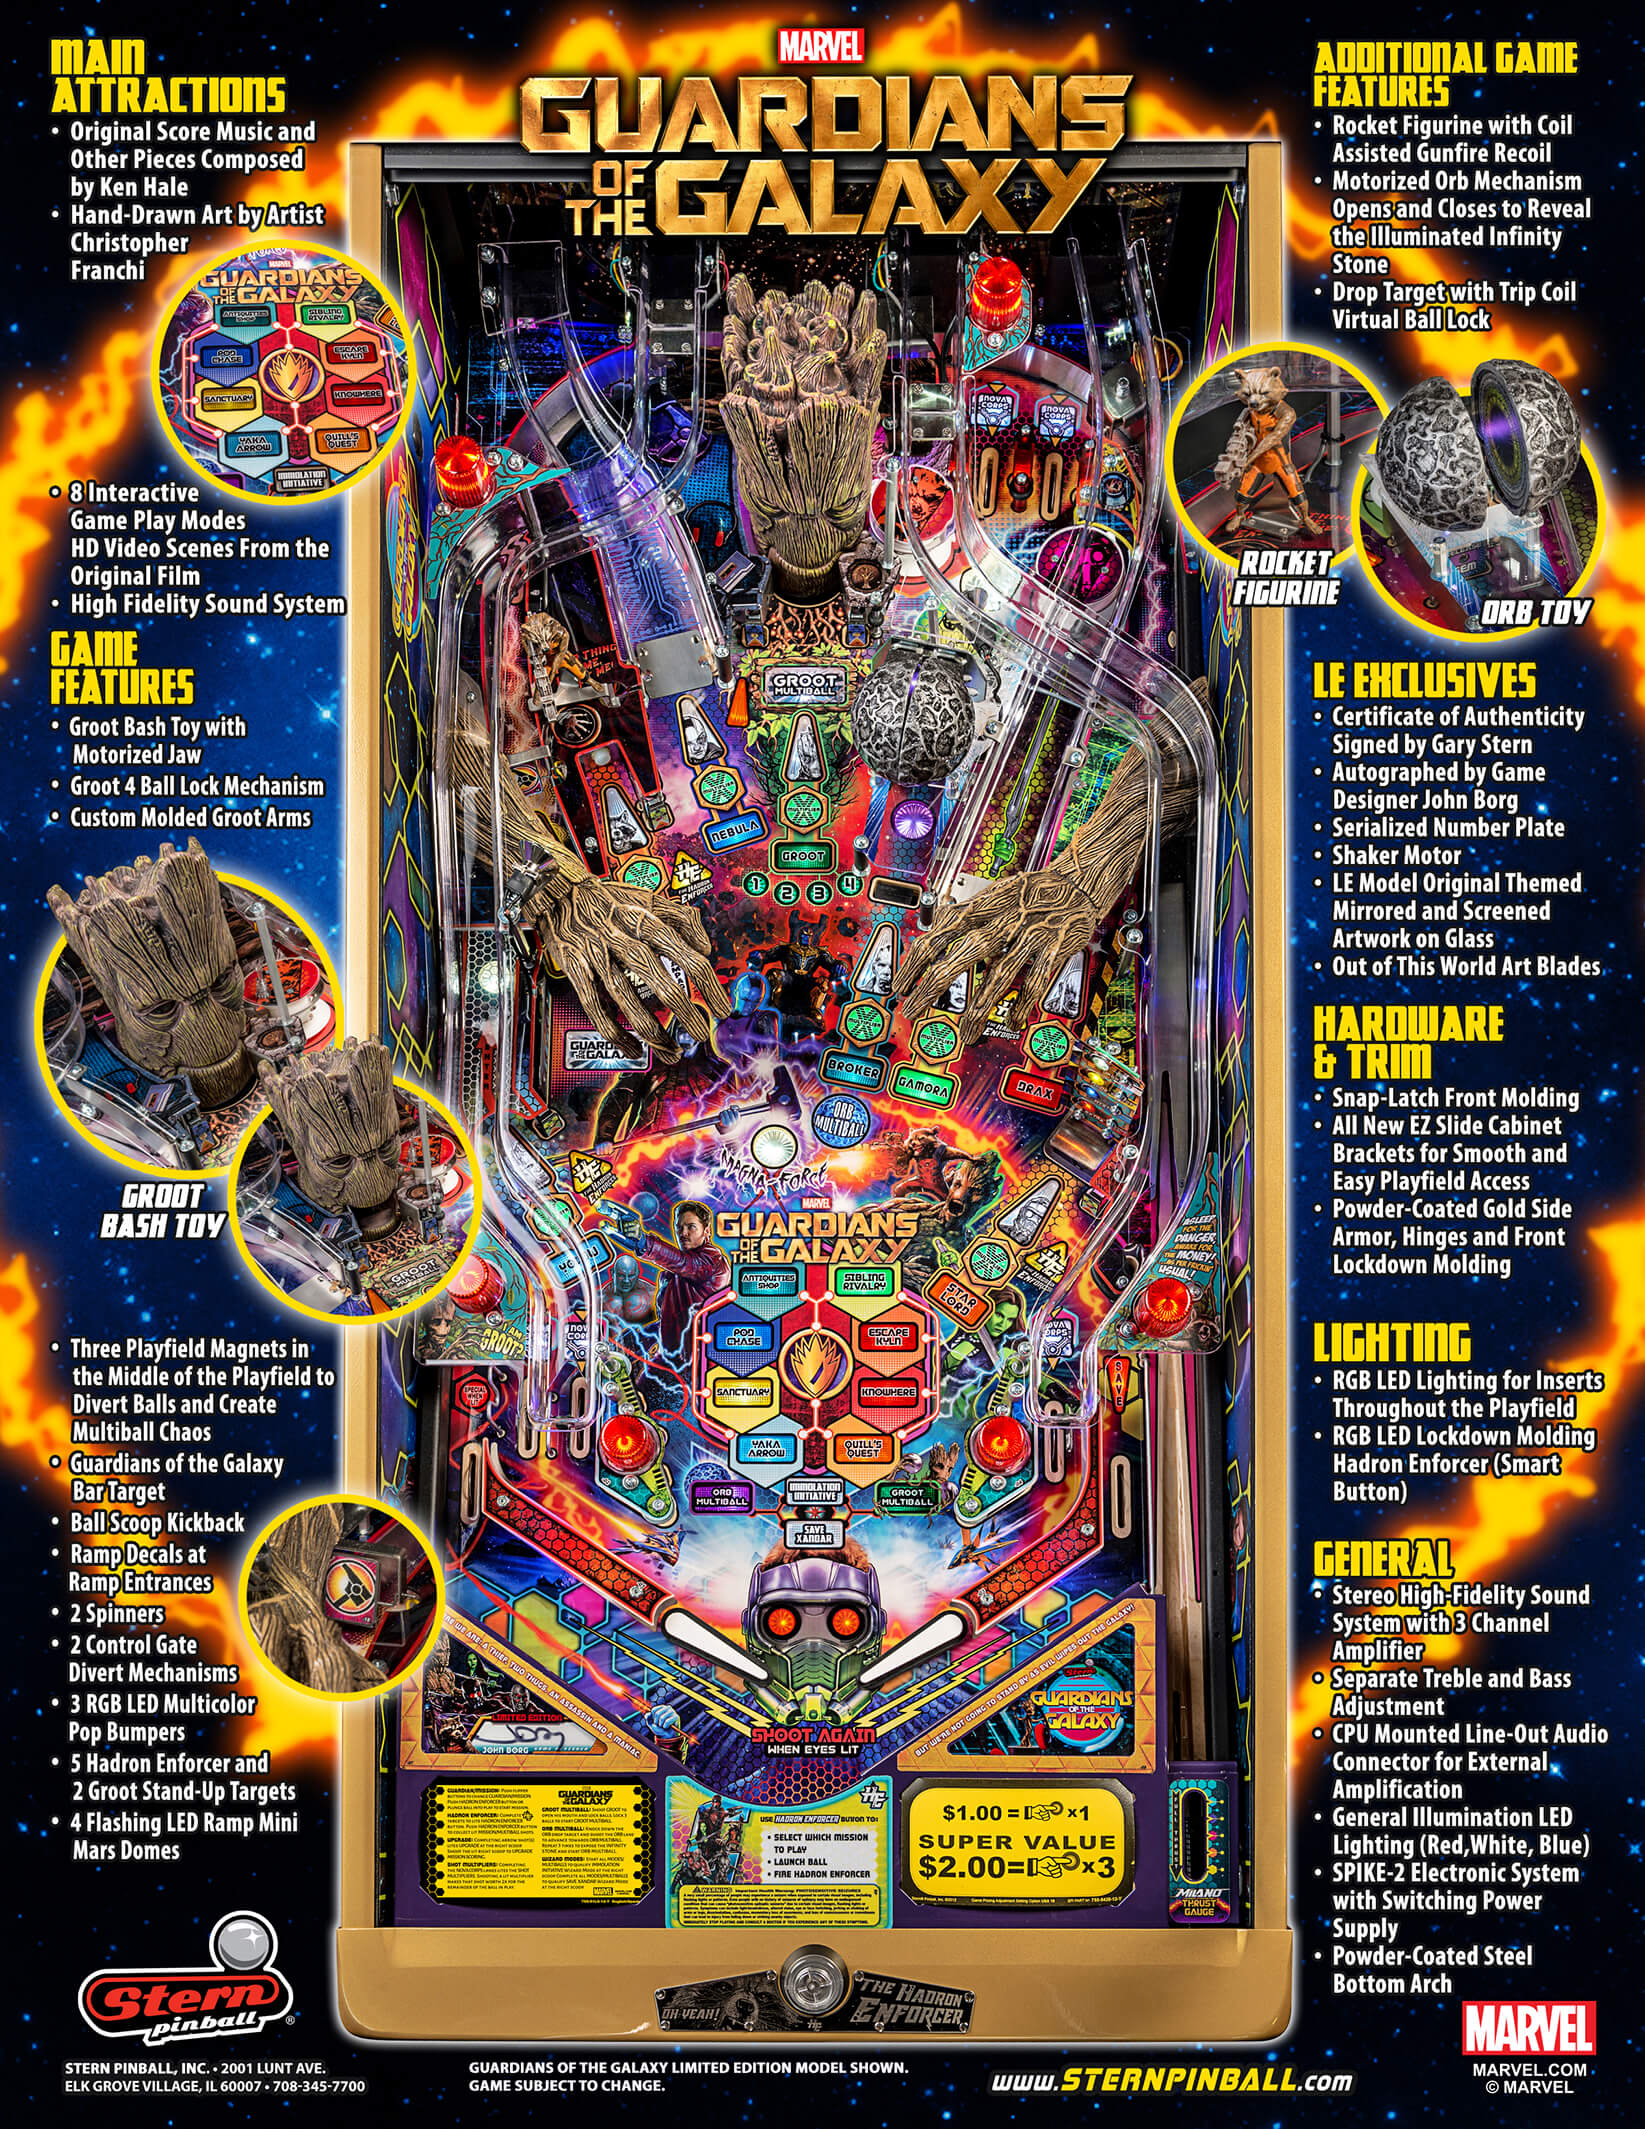 Guardians of the Galaxy Limited Edition Pinball Machine by Stern